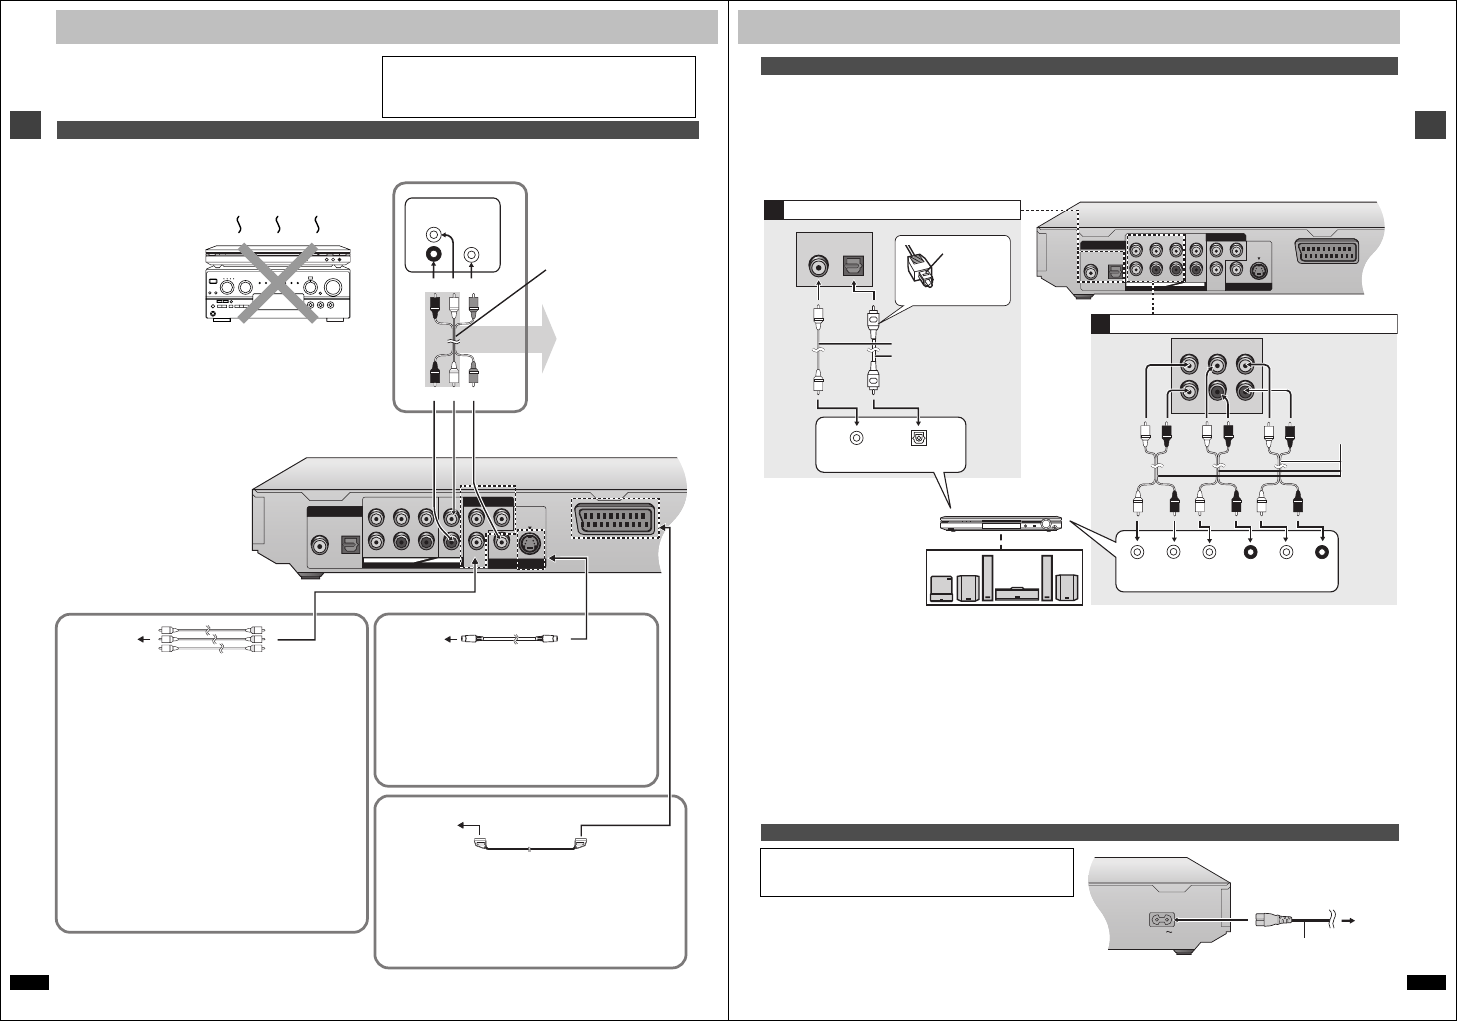 Page 3 of Panasonic DVD Player DVD-S75 User Guide